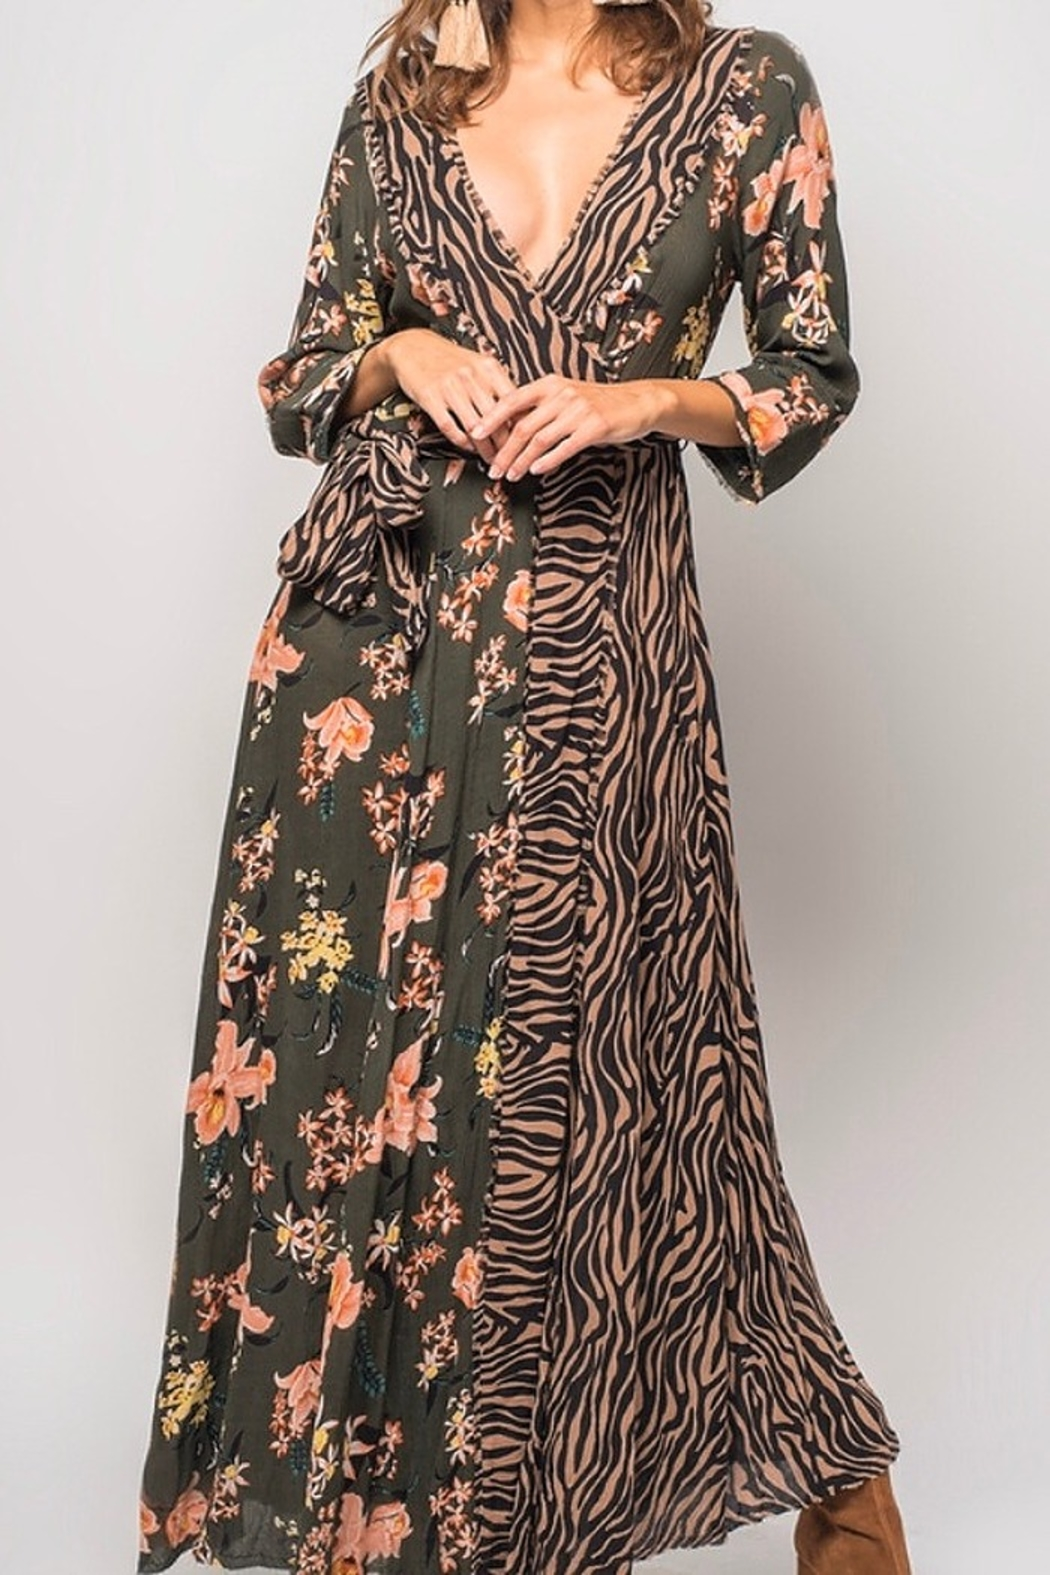 Z&L ANIMAL INSTINCTS MAXI - Front Cropped Image